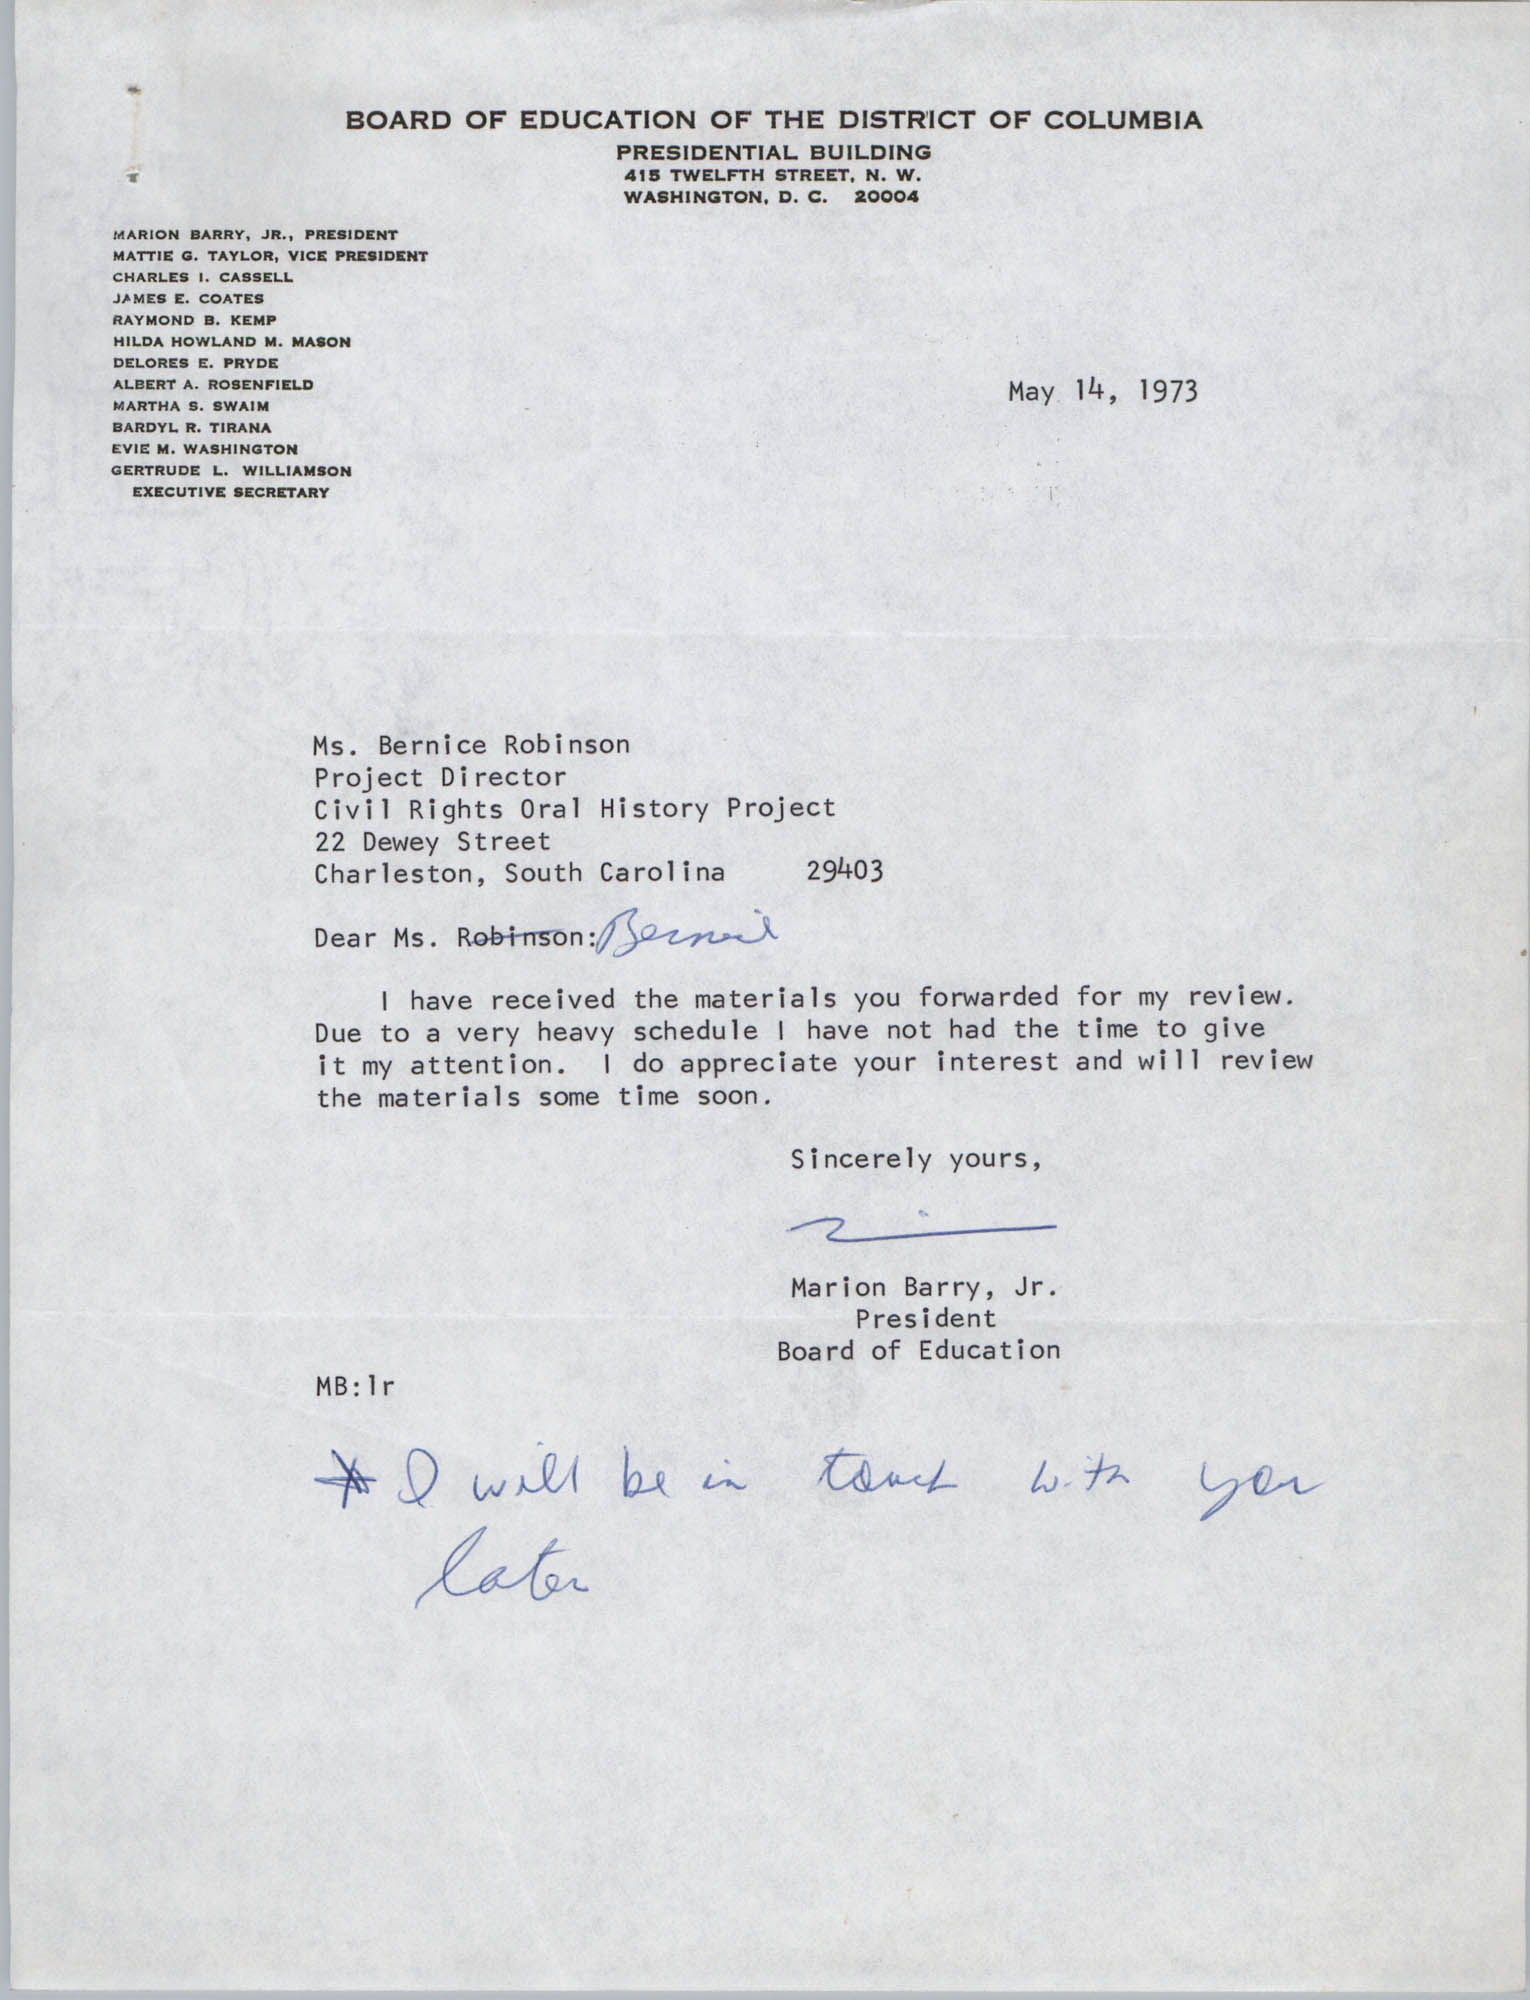 Letter from Marion Barry, Jr. to Bernice Robinson, May 14, 1973